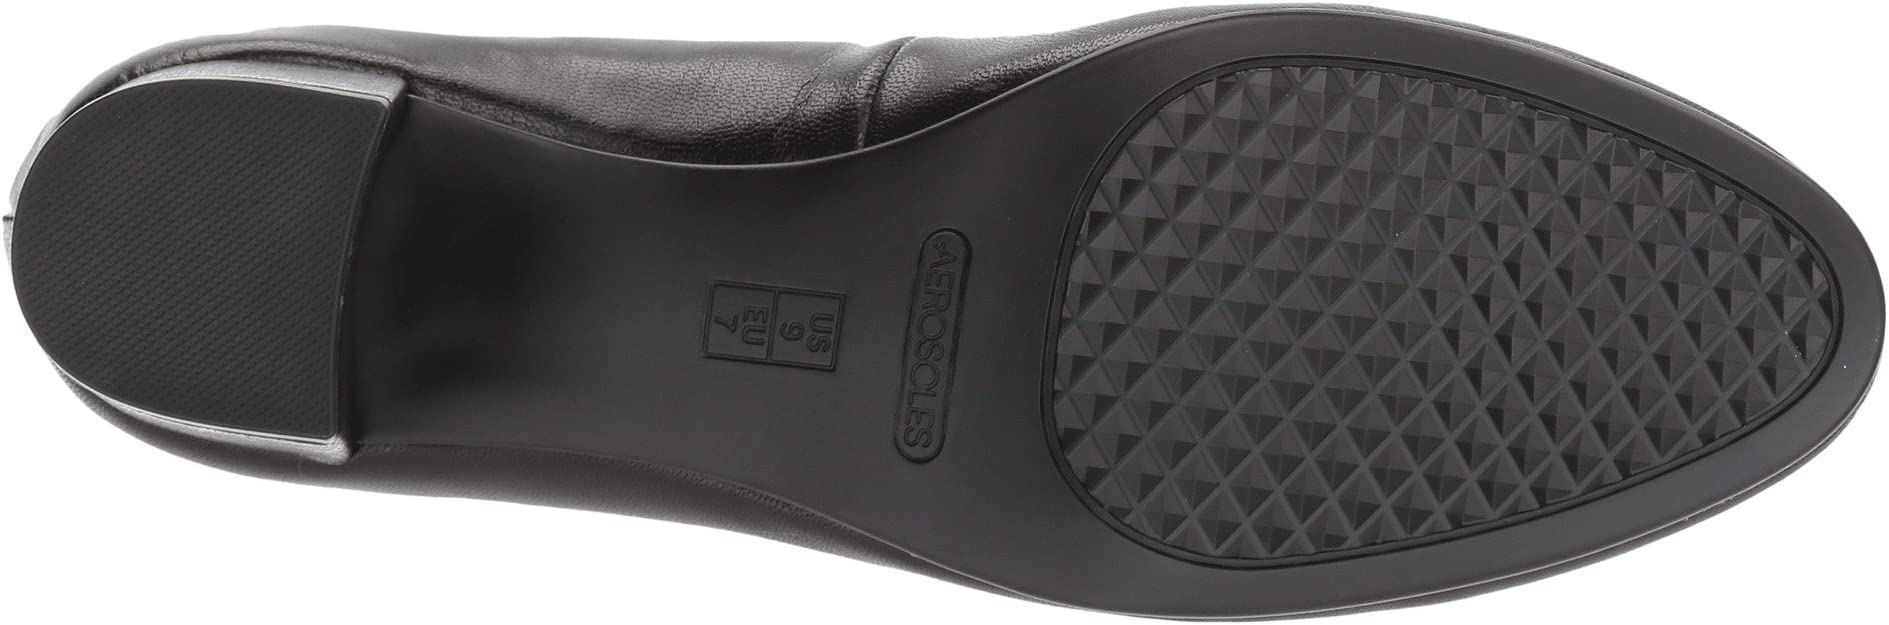 Aerosoles Compadre | Women's shoes | 2020 Newest